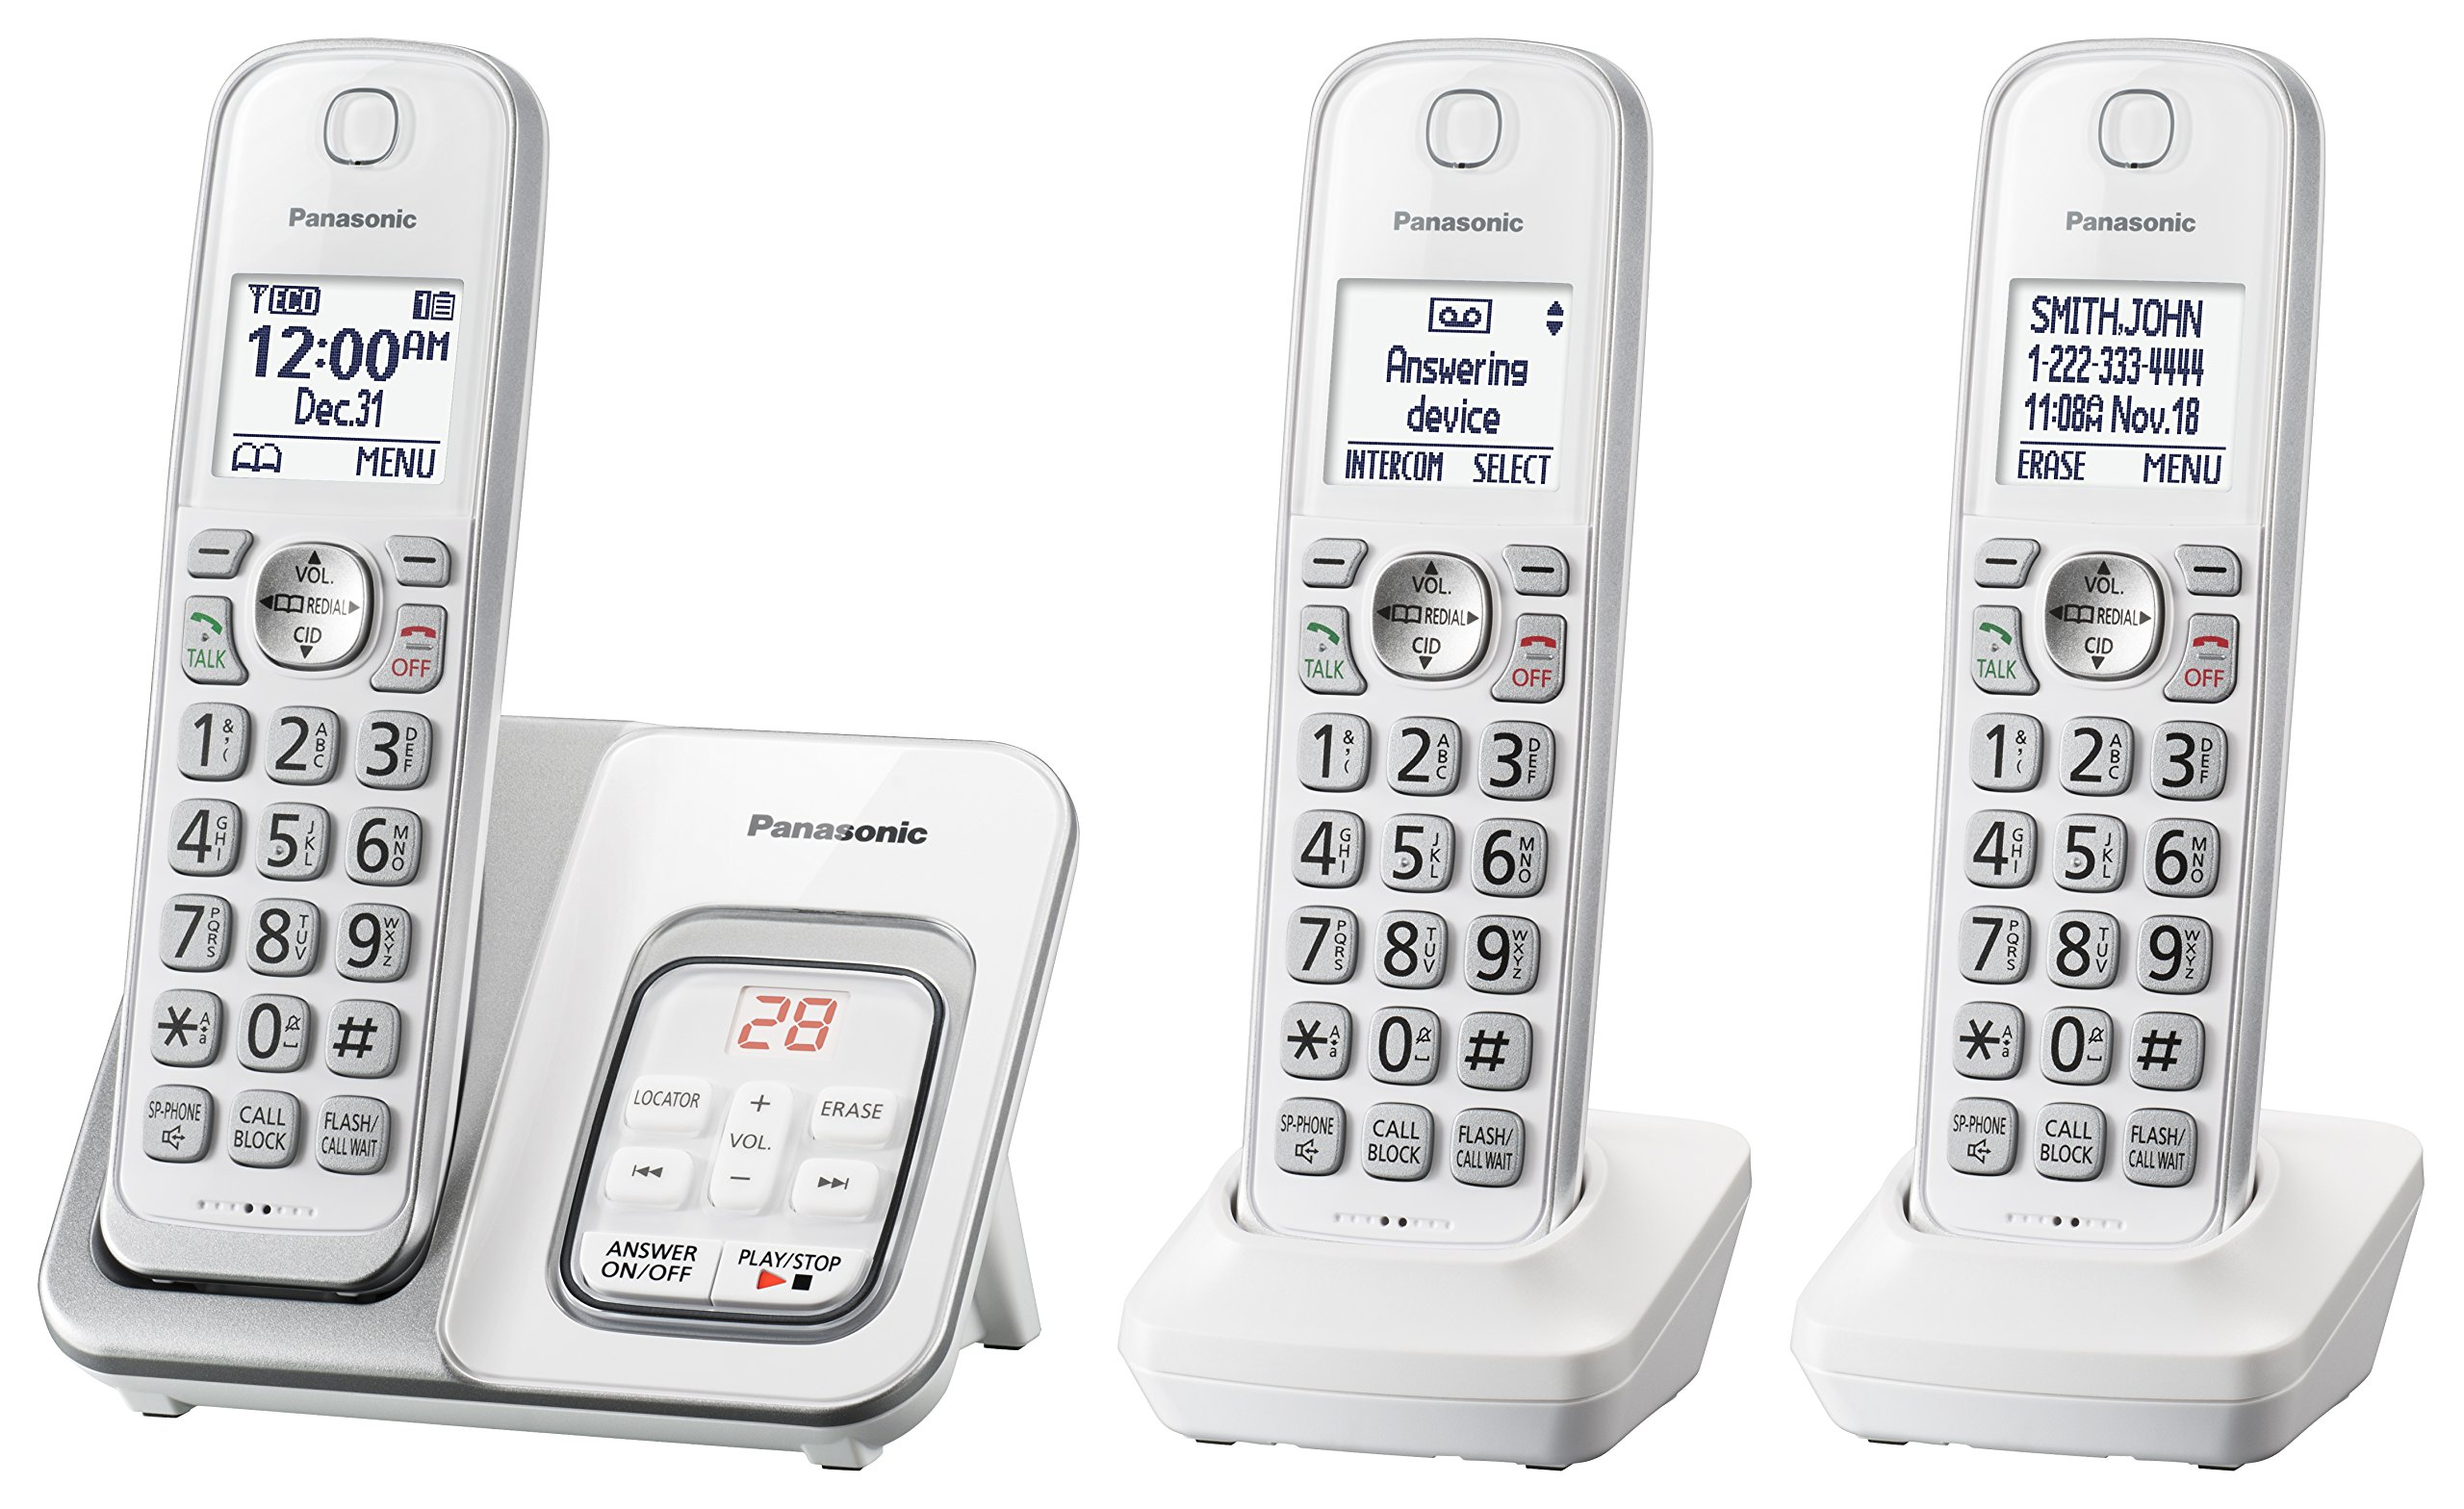 PANASONIC Expandable Cordless Phone System with Answering Machine and Call Block - 3 Cordless Handsets - KX-TGD533W (White) by Panasonic